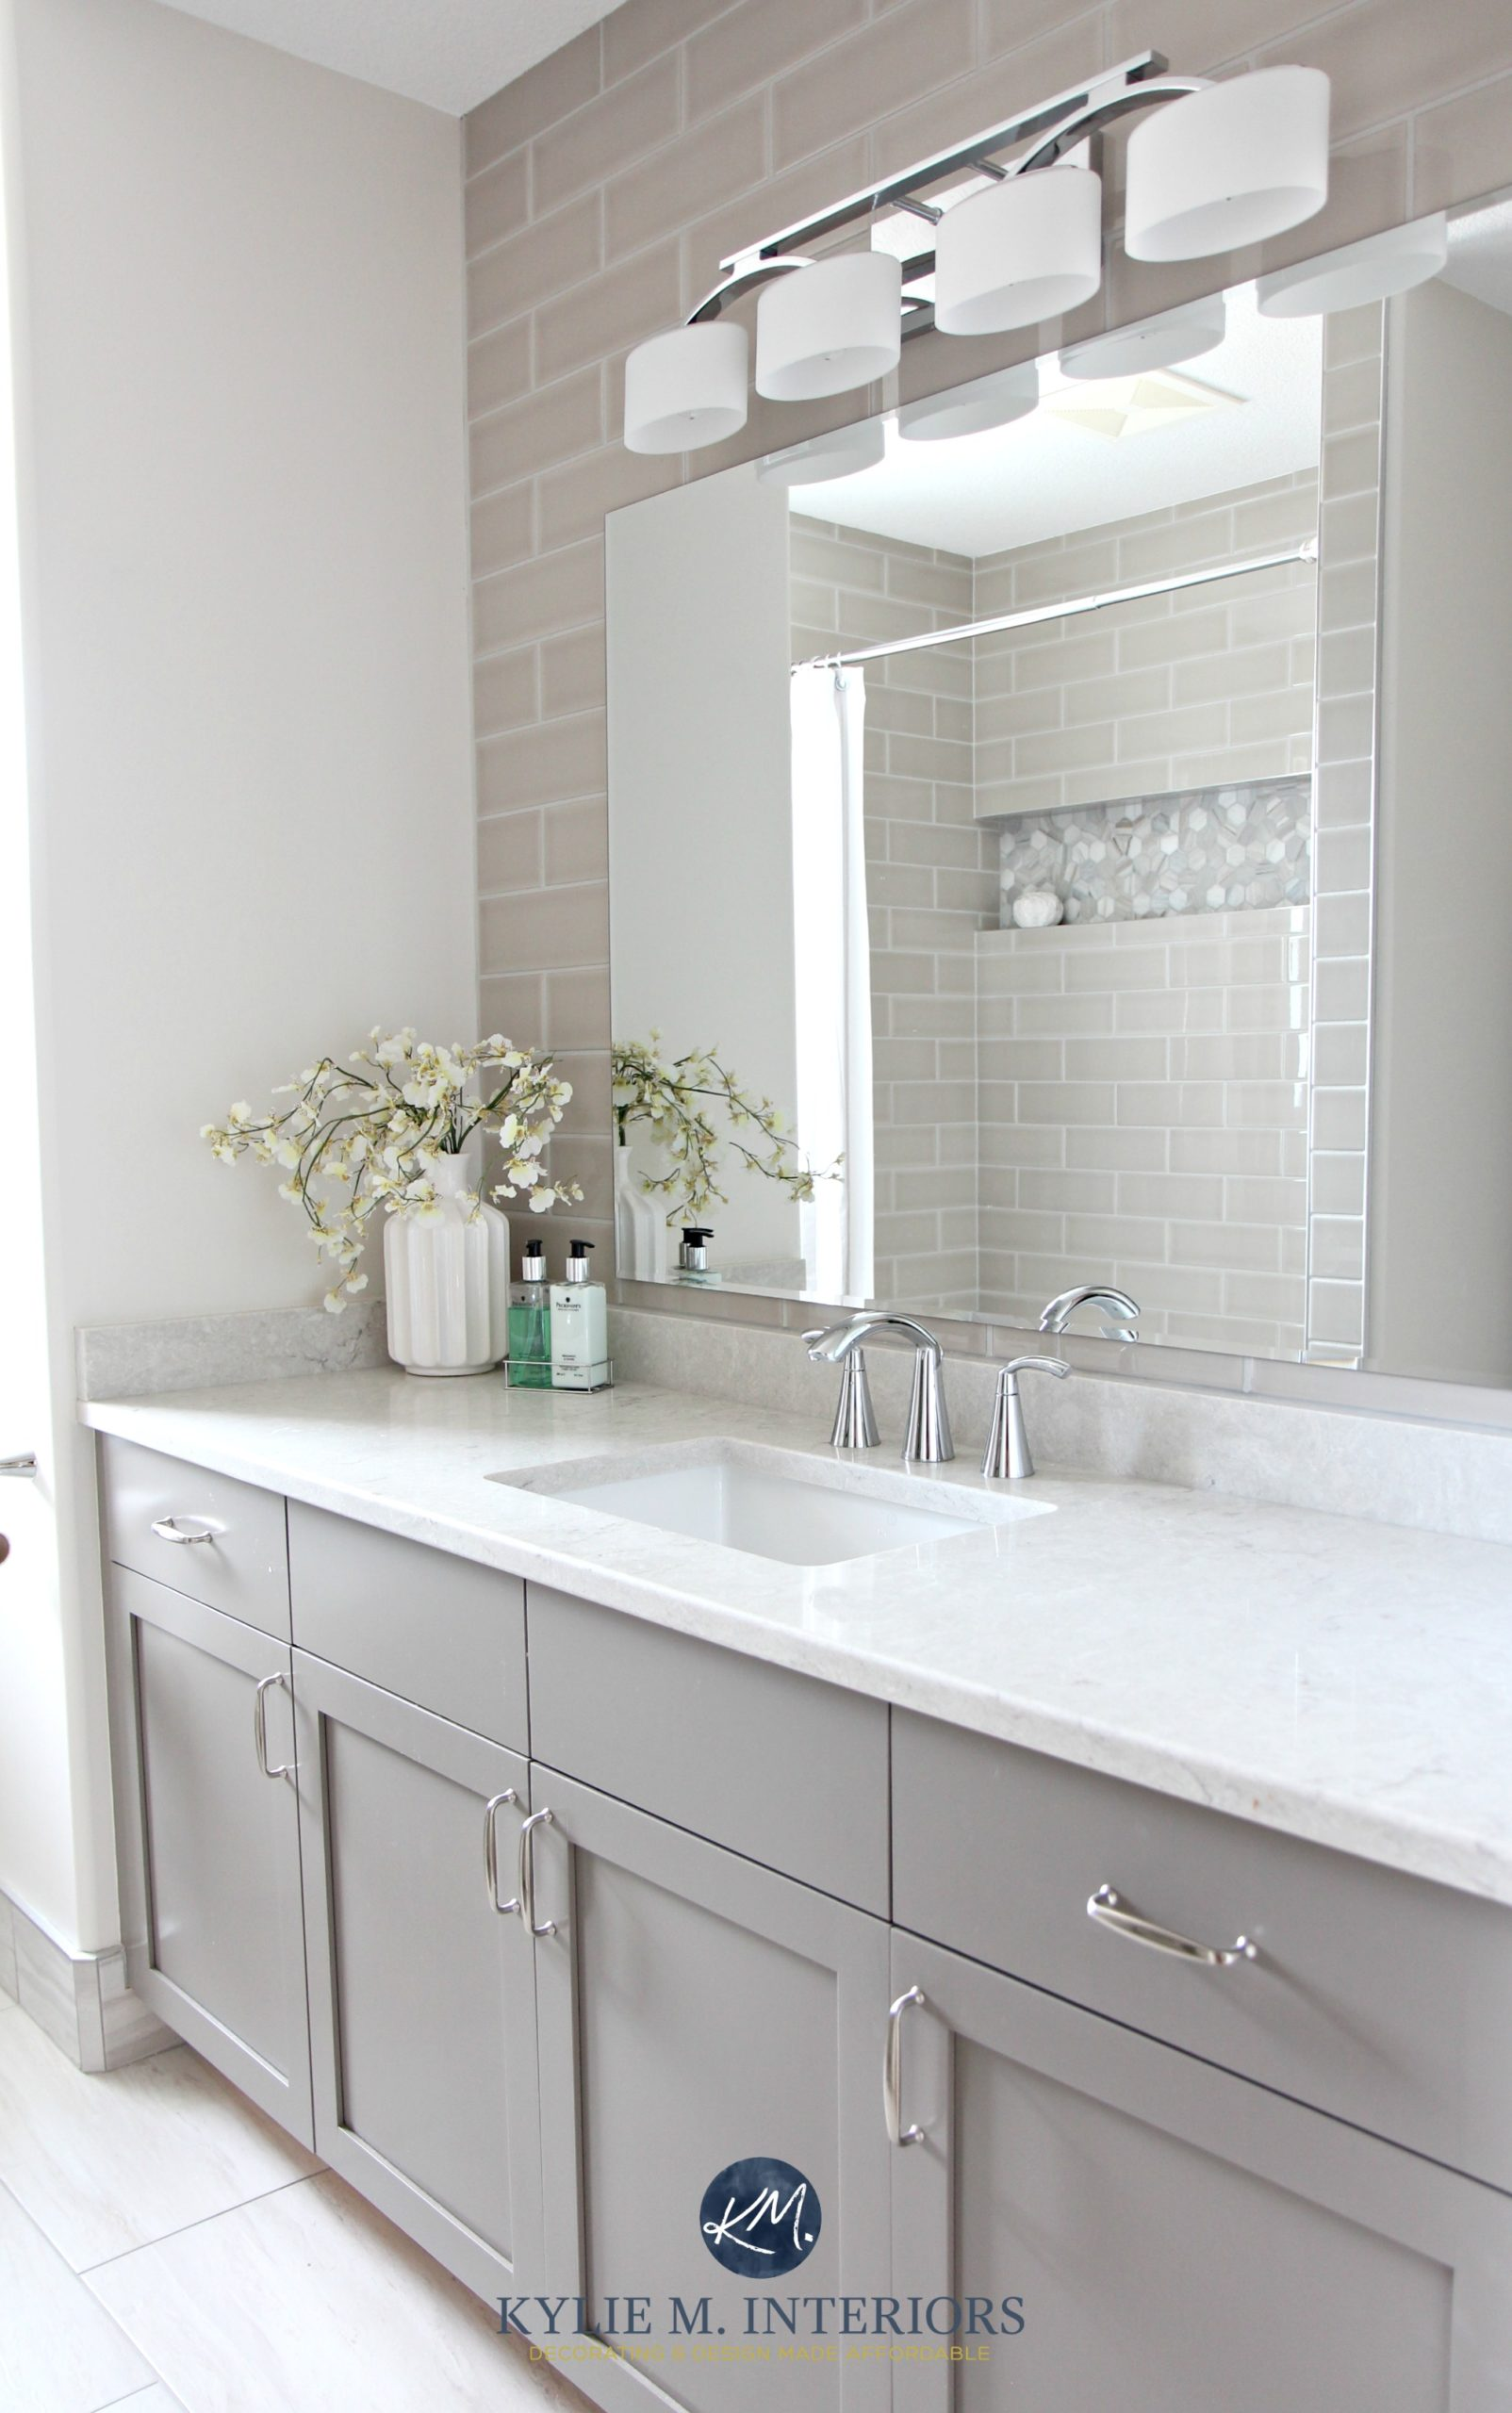 Bathroom remodel moen glyde fixtures bianco drift quartz bathroom remodel moen glyde fixtures bianco drift quartz countertop caesarstone subway tile wall gray painted vanity by kylie m interiors dailygadgetfo Choice Image